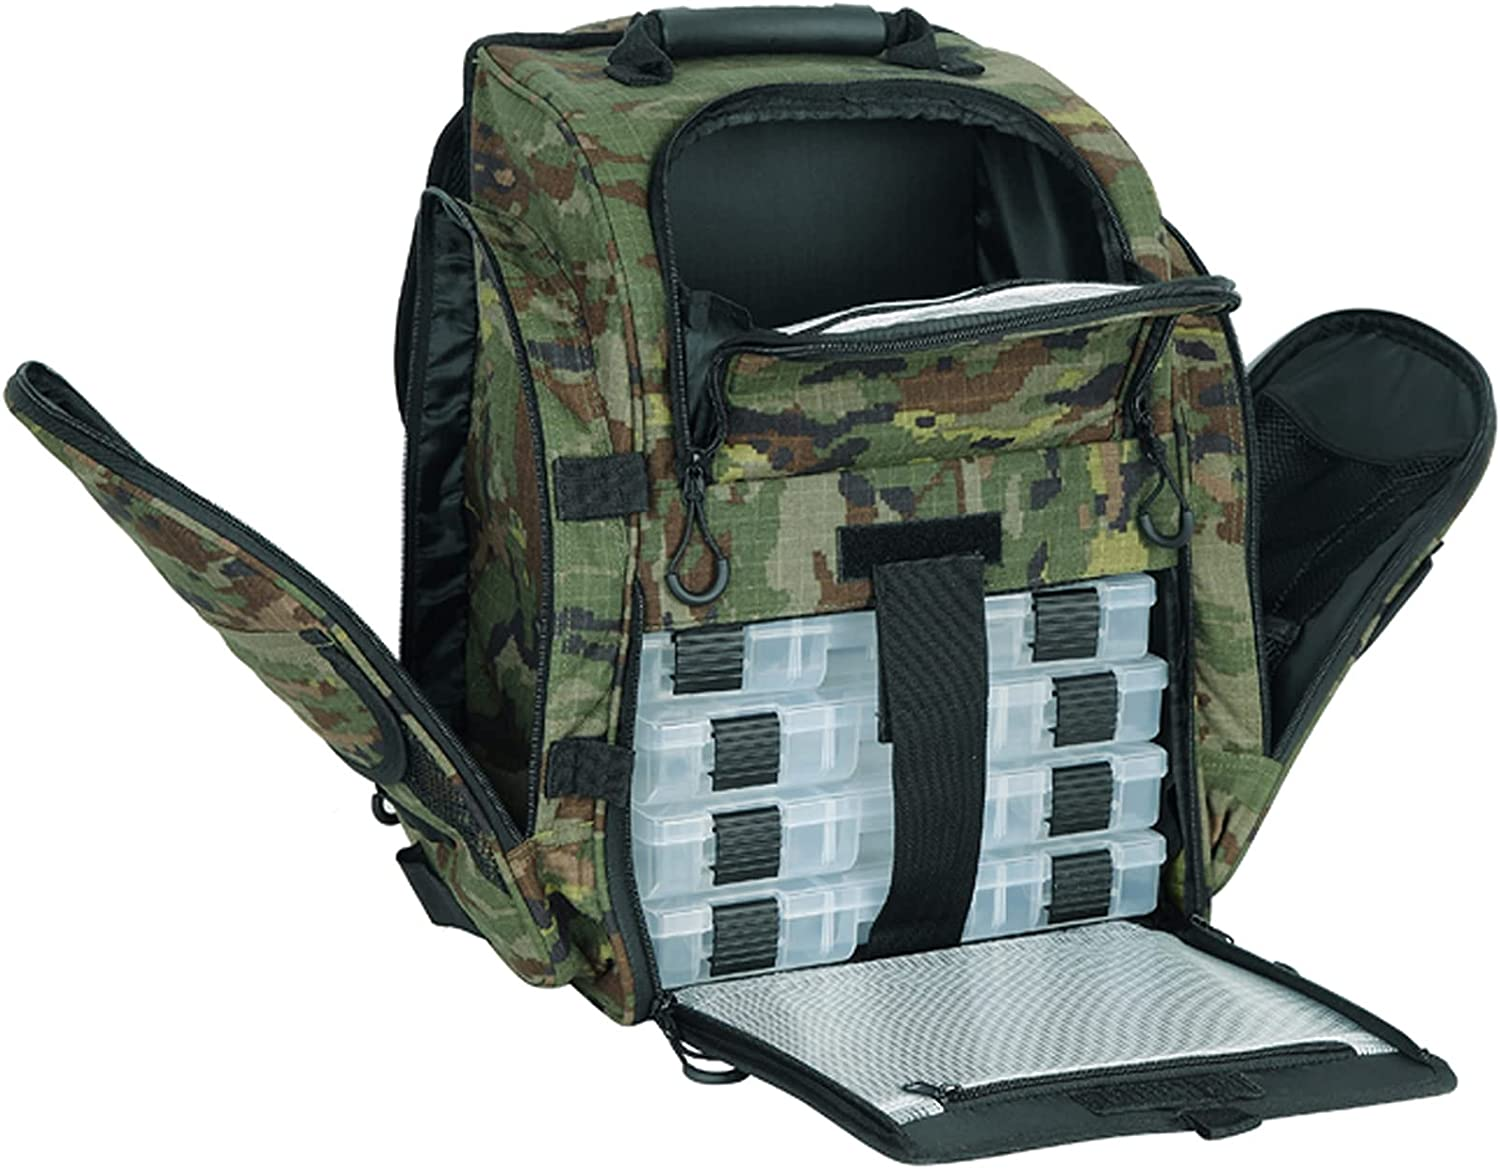 AUMTISC Fishing-Backpack Large Limited price sale 2021 new Tackle-Bag Protective Rain - with